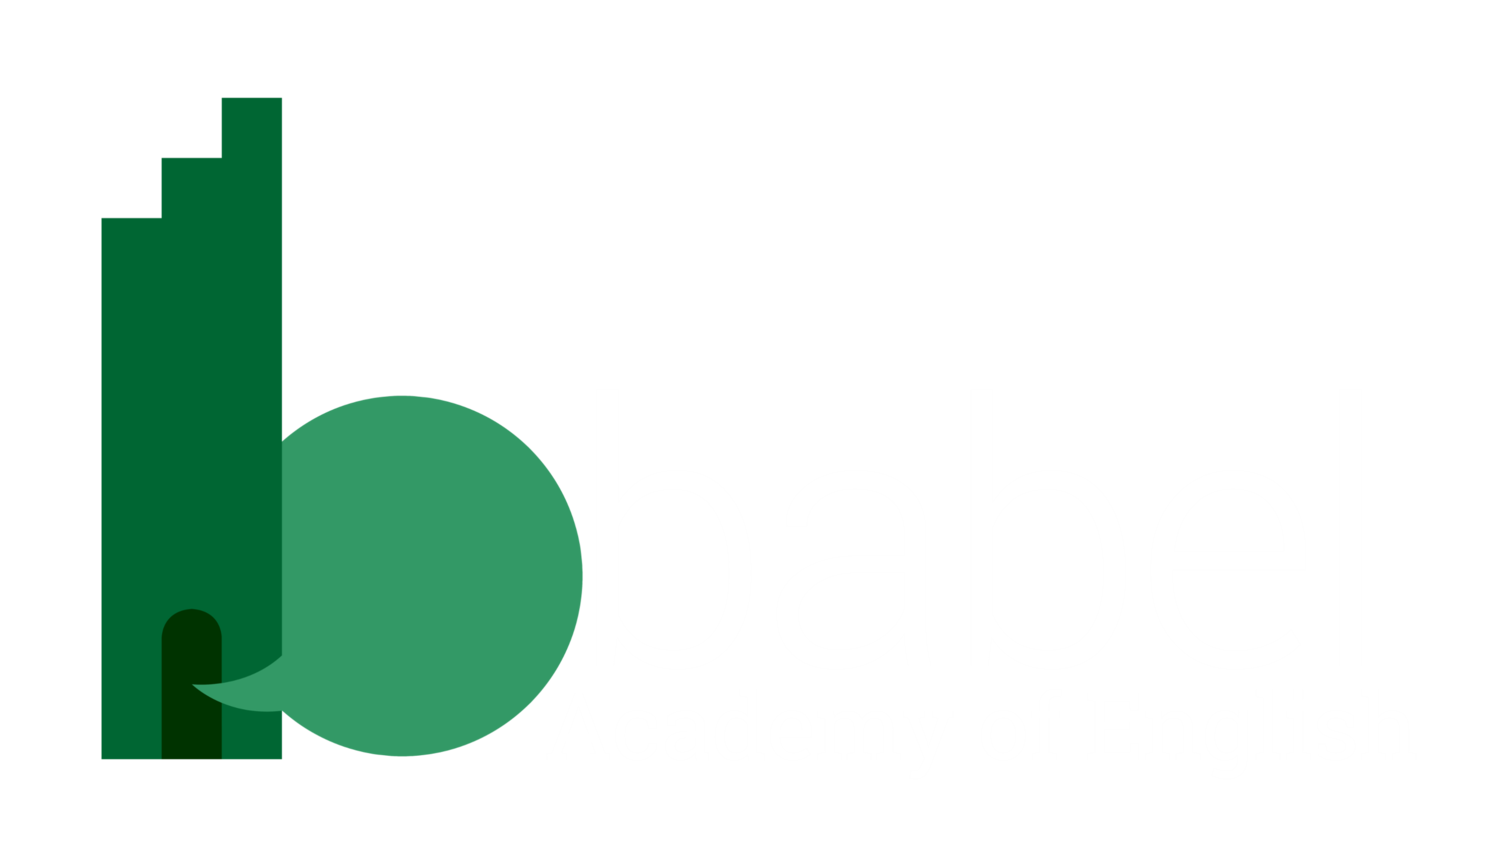 Babel Academy of English